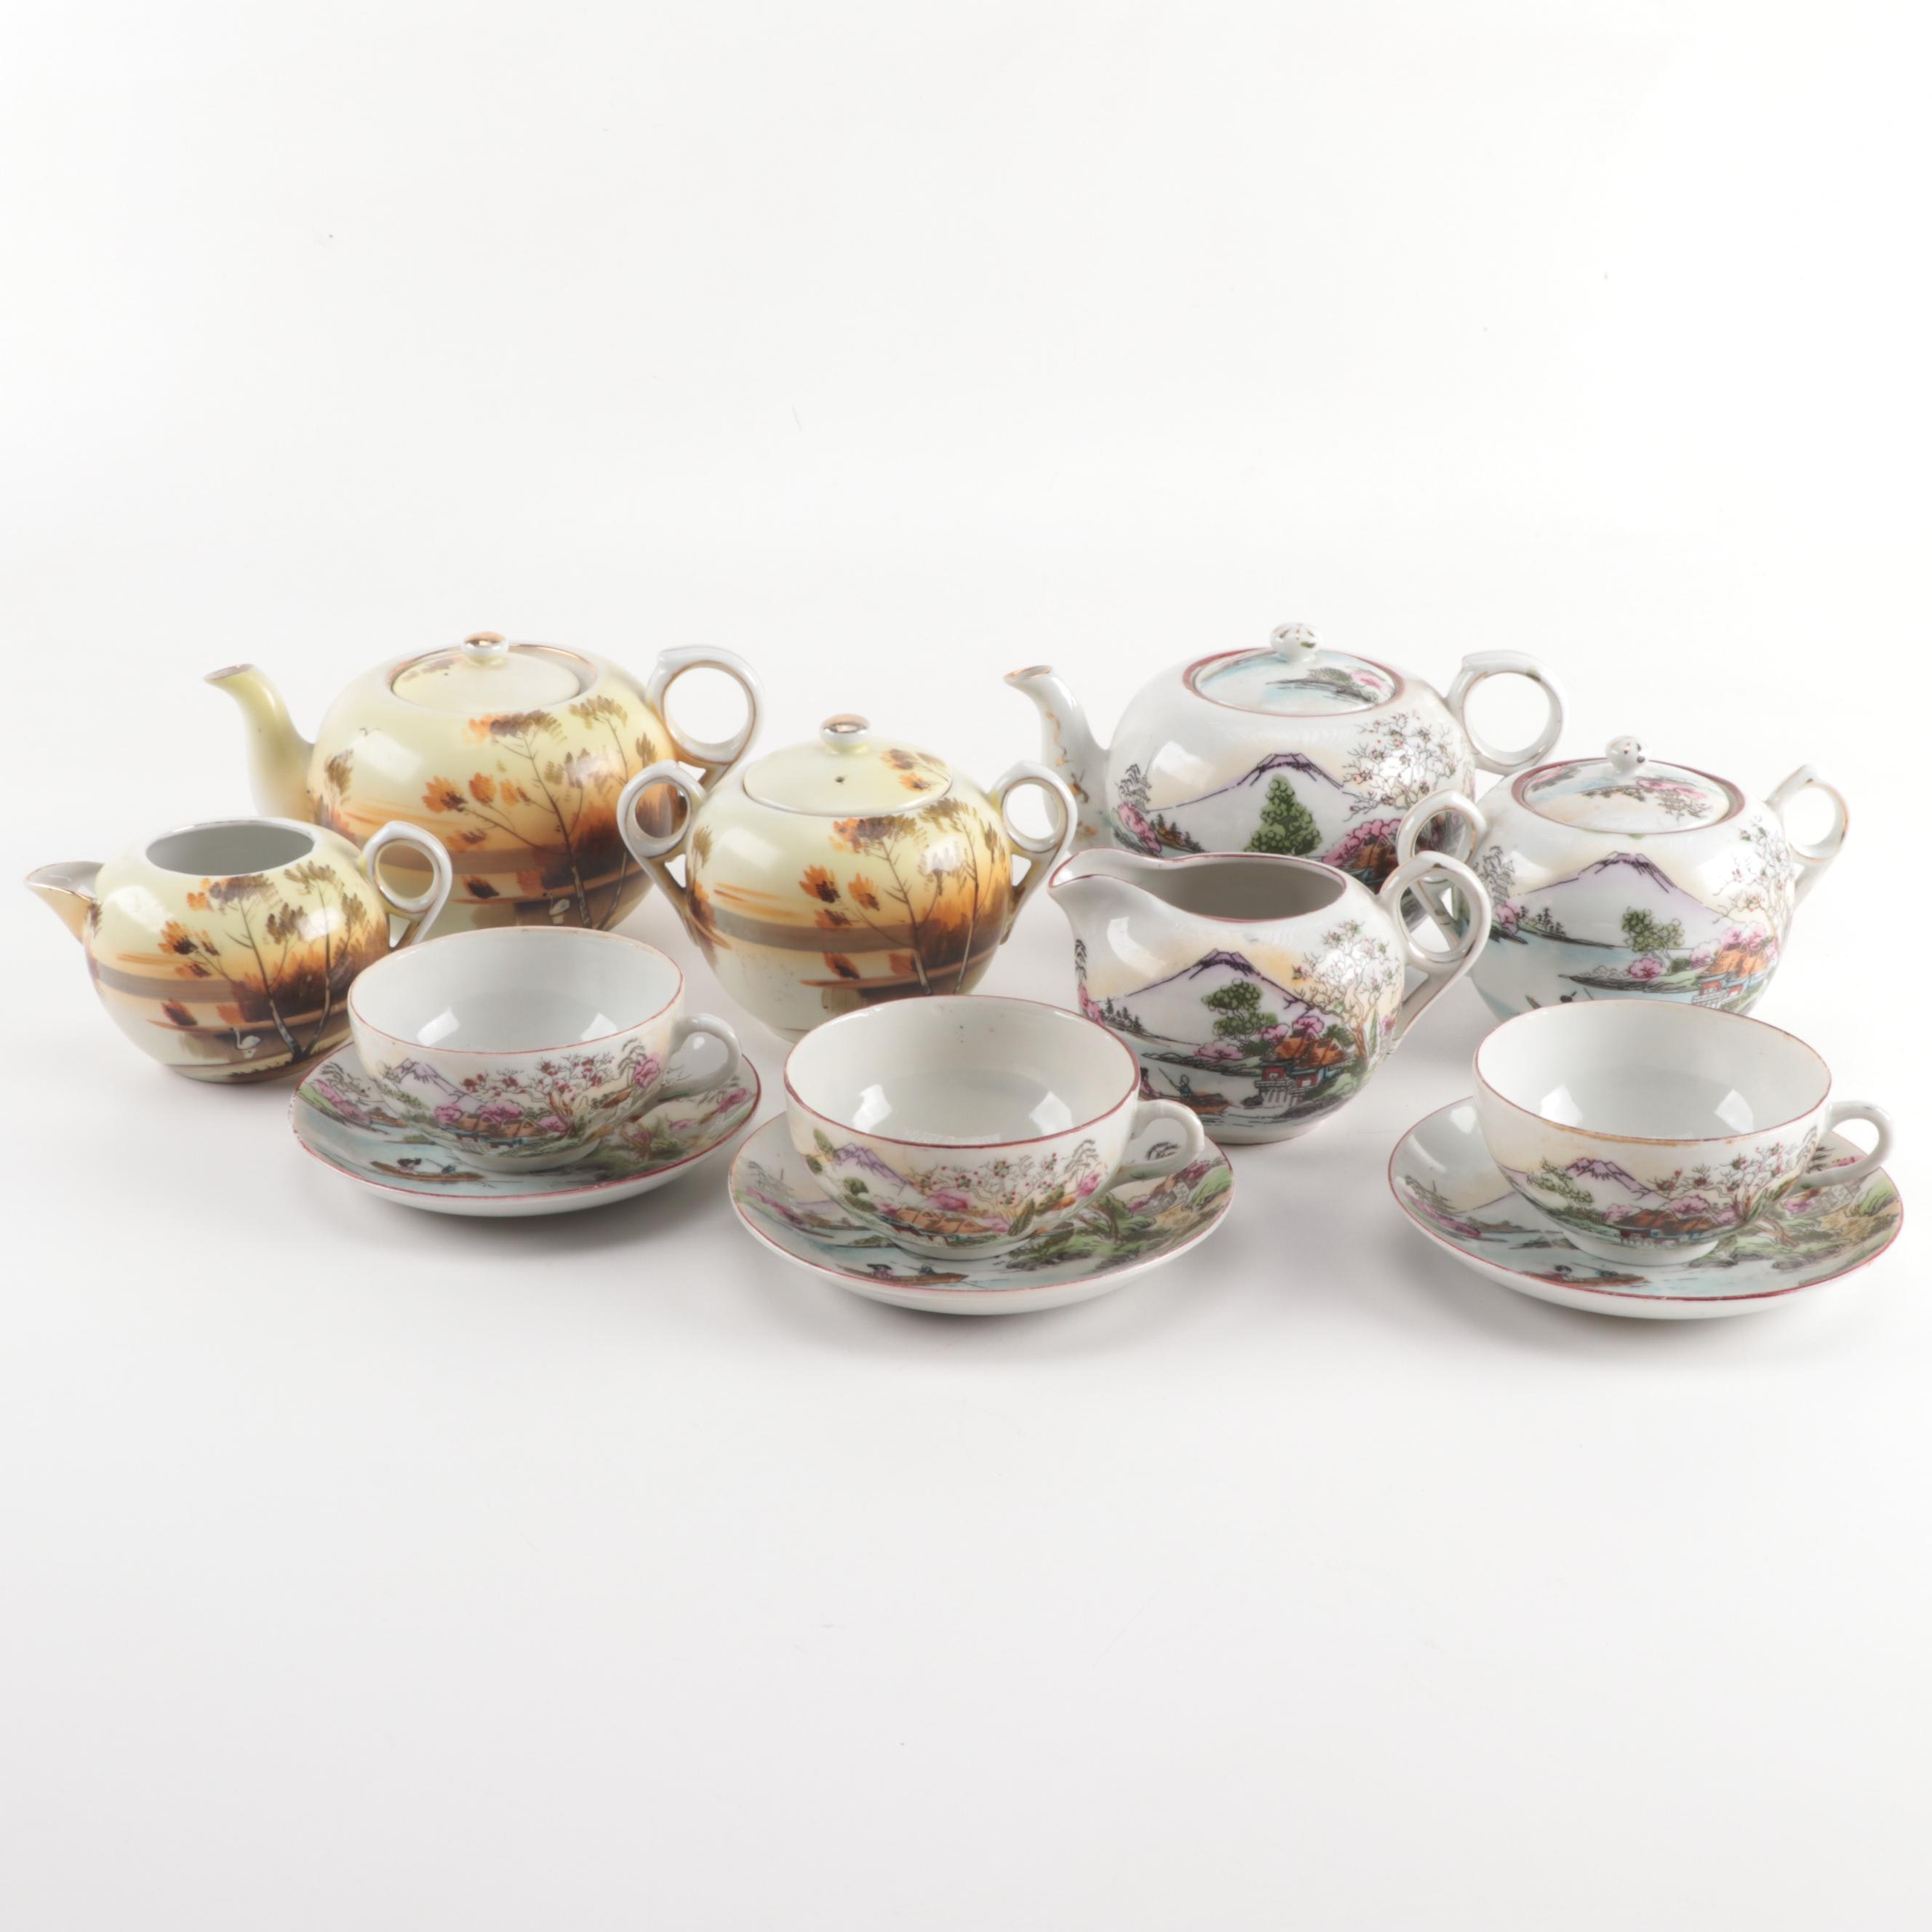 Vintage Japanese Porcelain Tea Sets